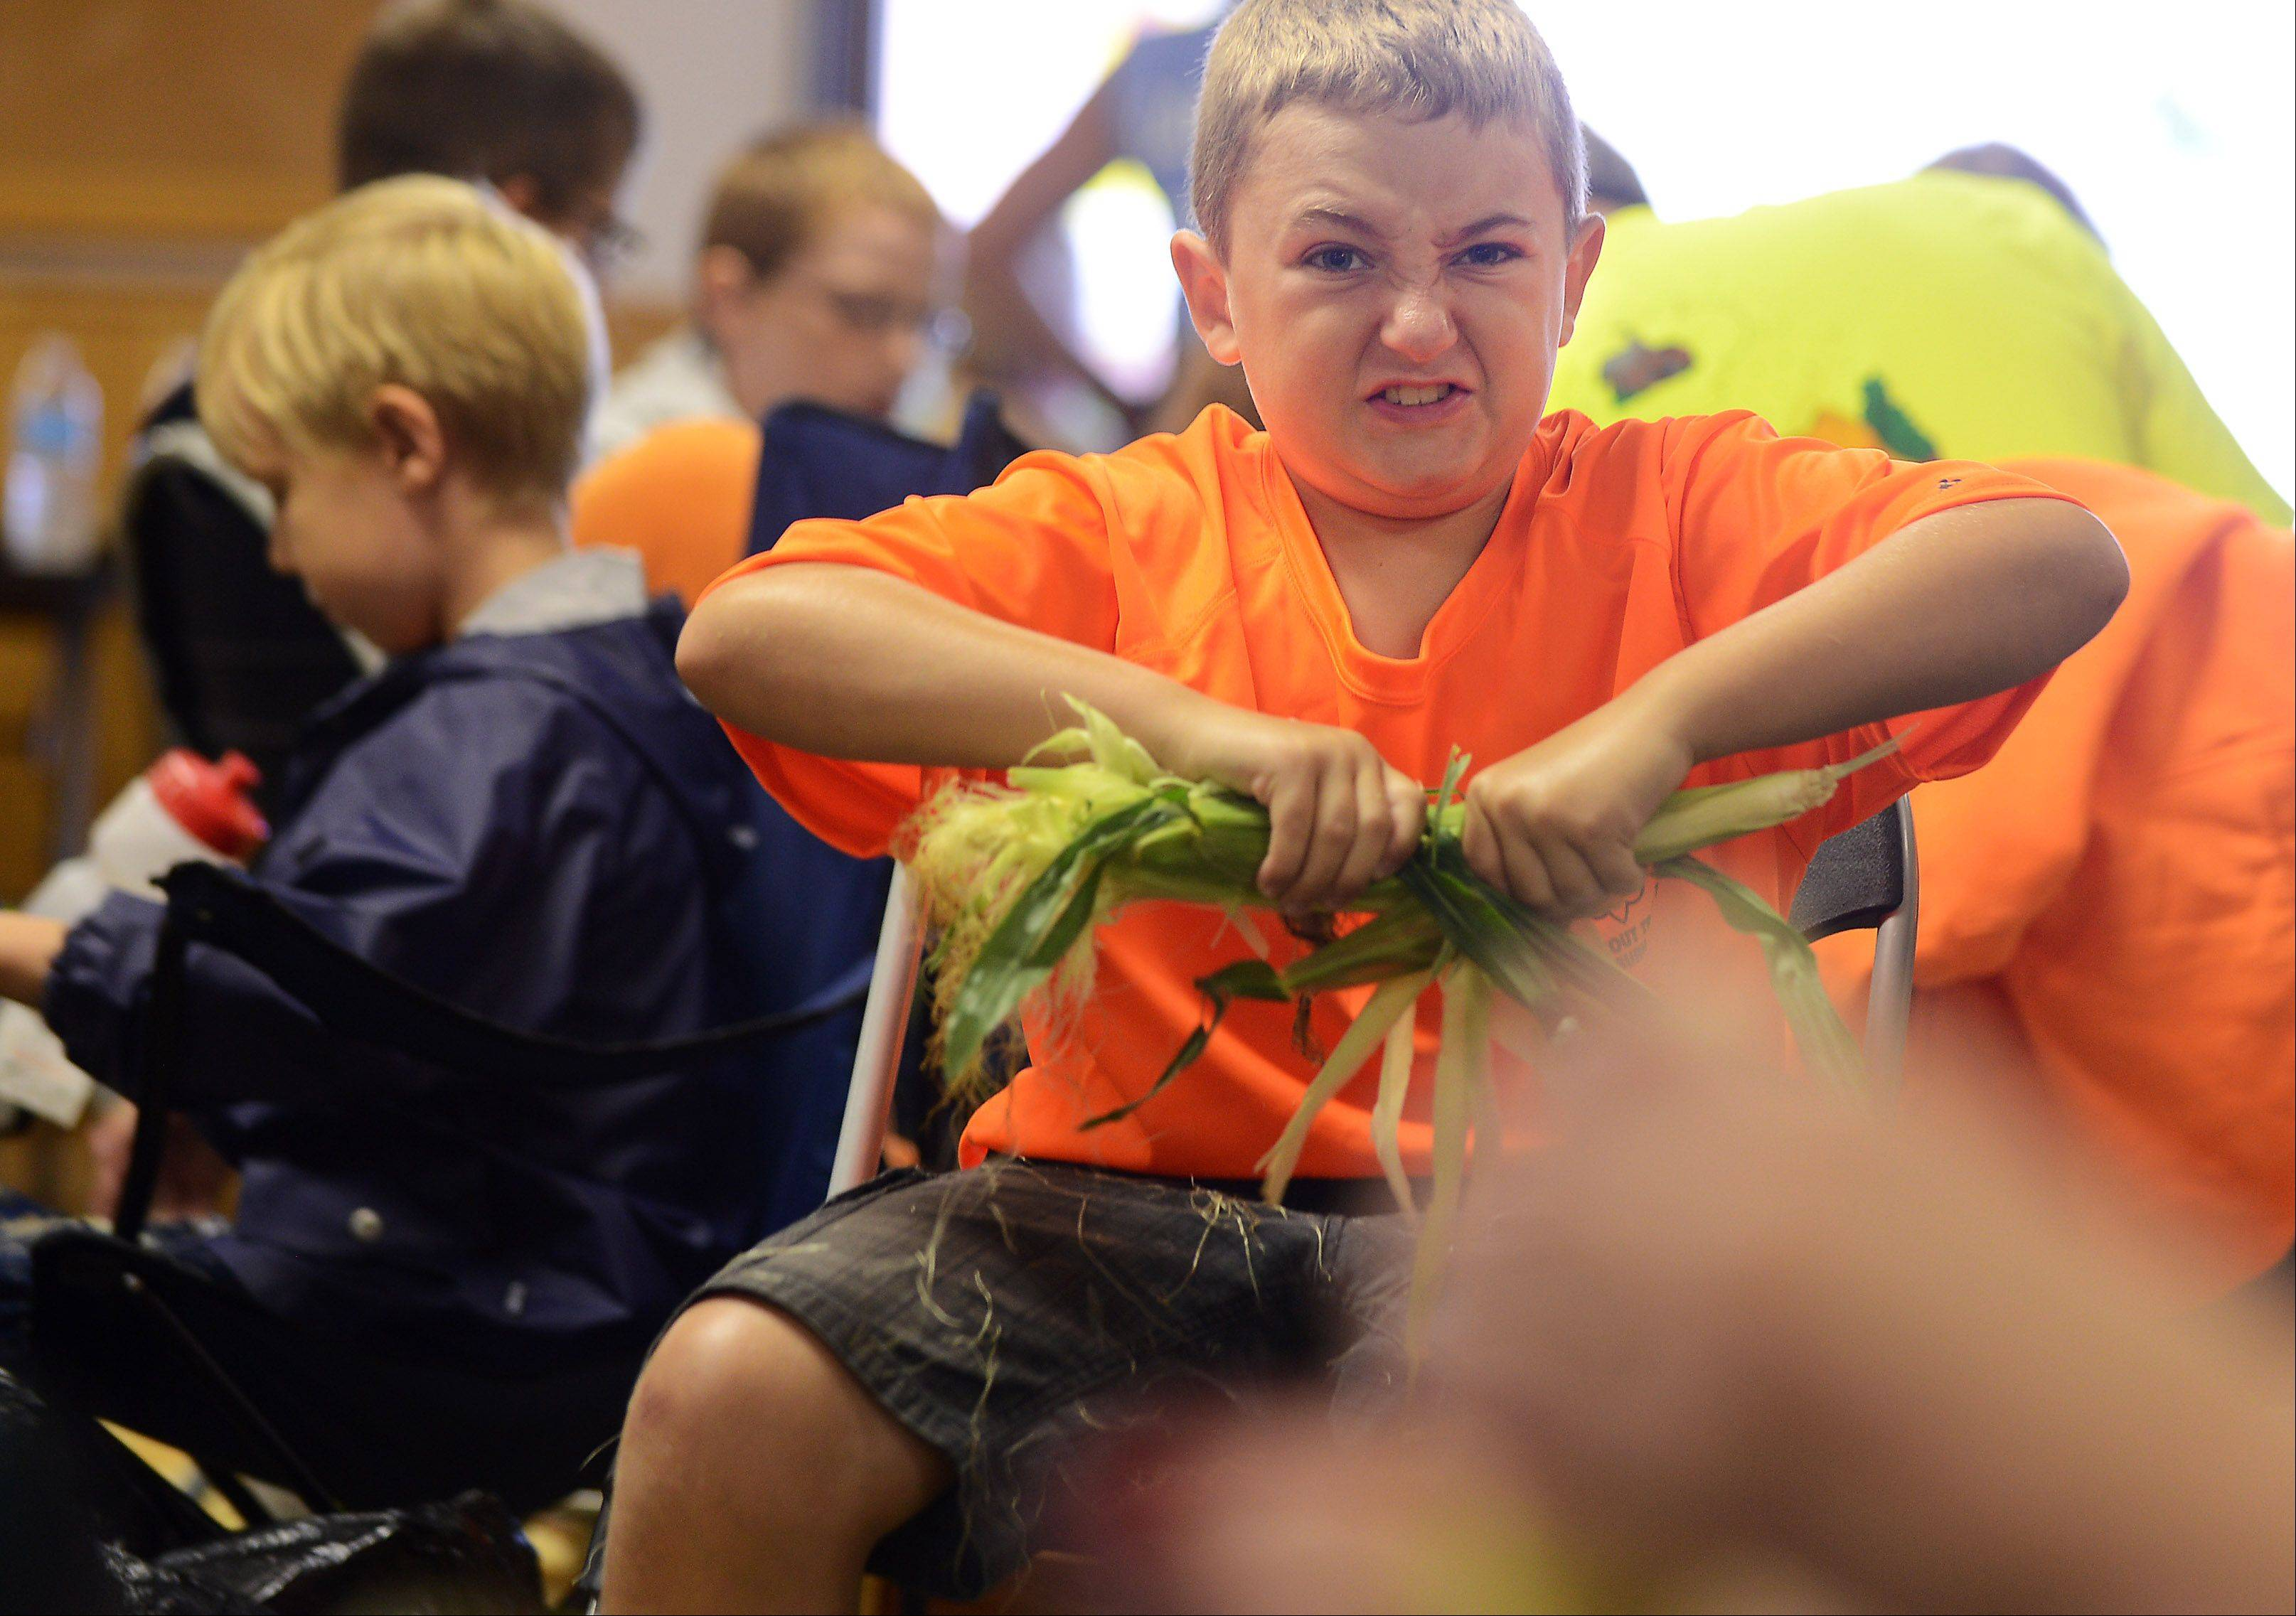 Parker LaSalle, 11, of Elburn, gives it his all as he joins a roomful of volunteers to shuck corn in preparation Friday for the annual Sugar Grove Corn Boil. About 9,000 ears of corn were shucked by over 100 volunteers Friday and Saturday.